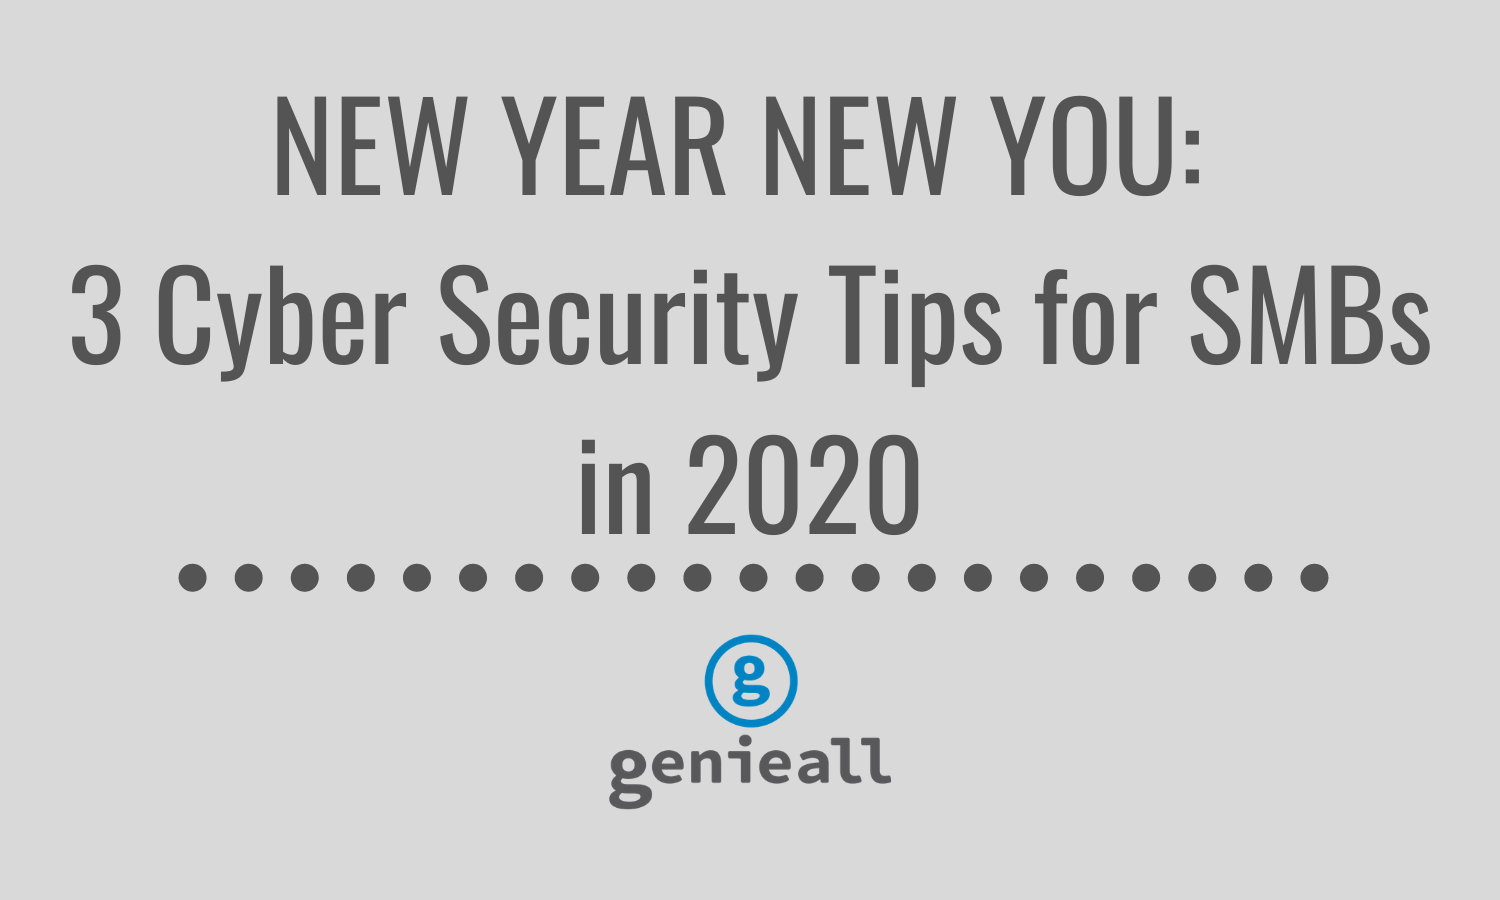 3 cyber security tips for smbs in 2020